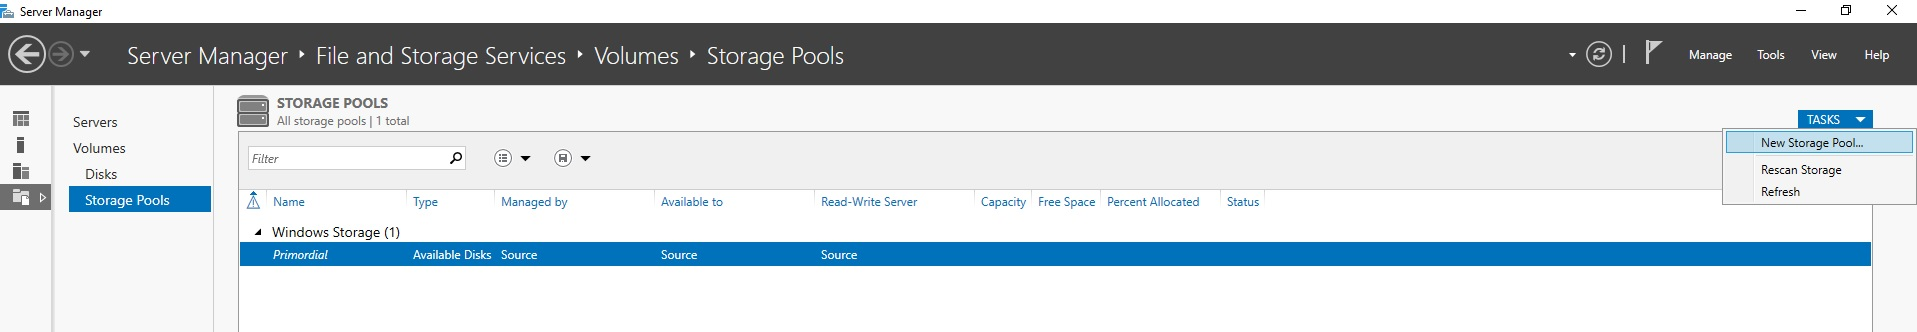 Adding a new Storage Pool to your VM